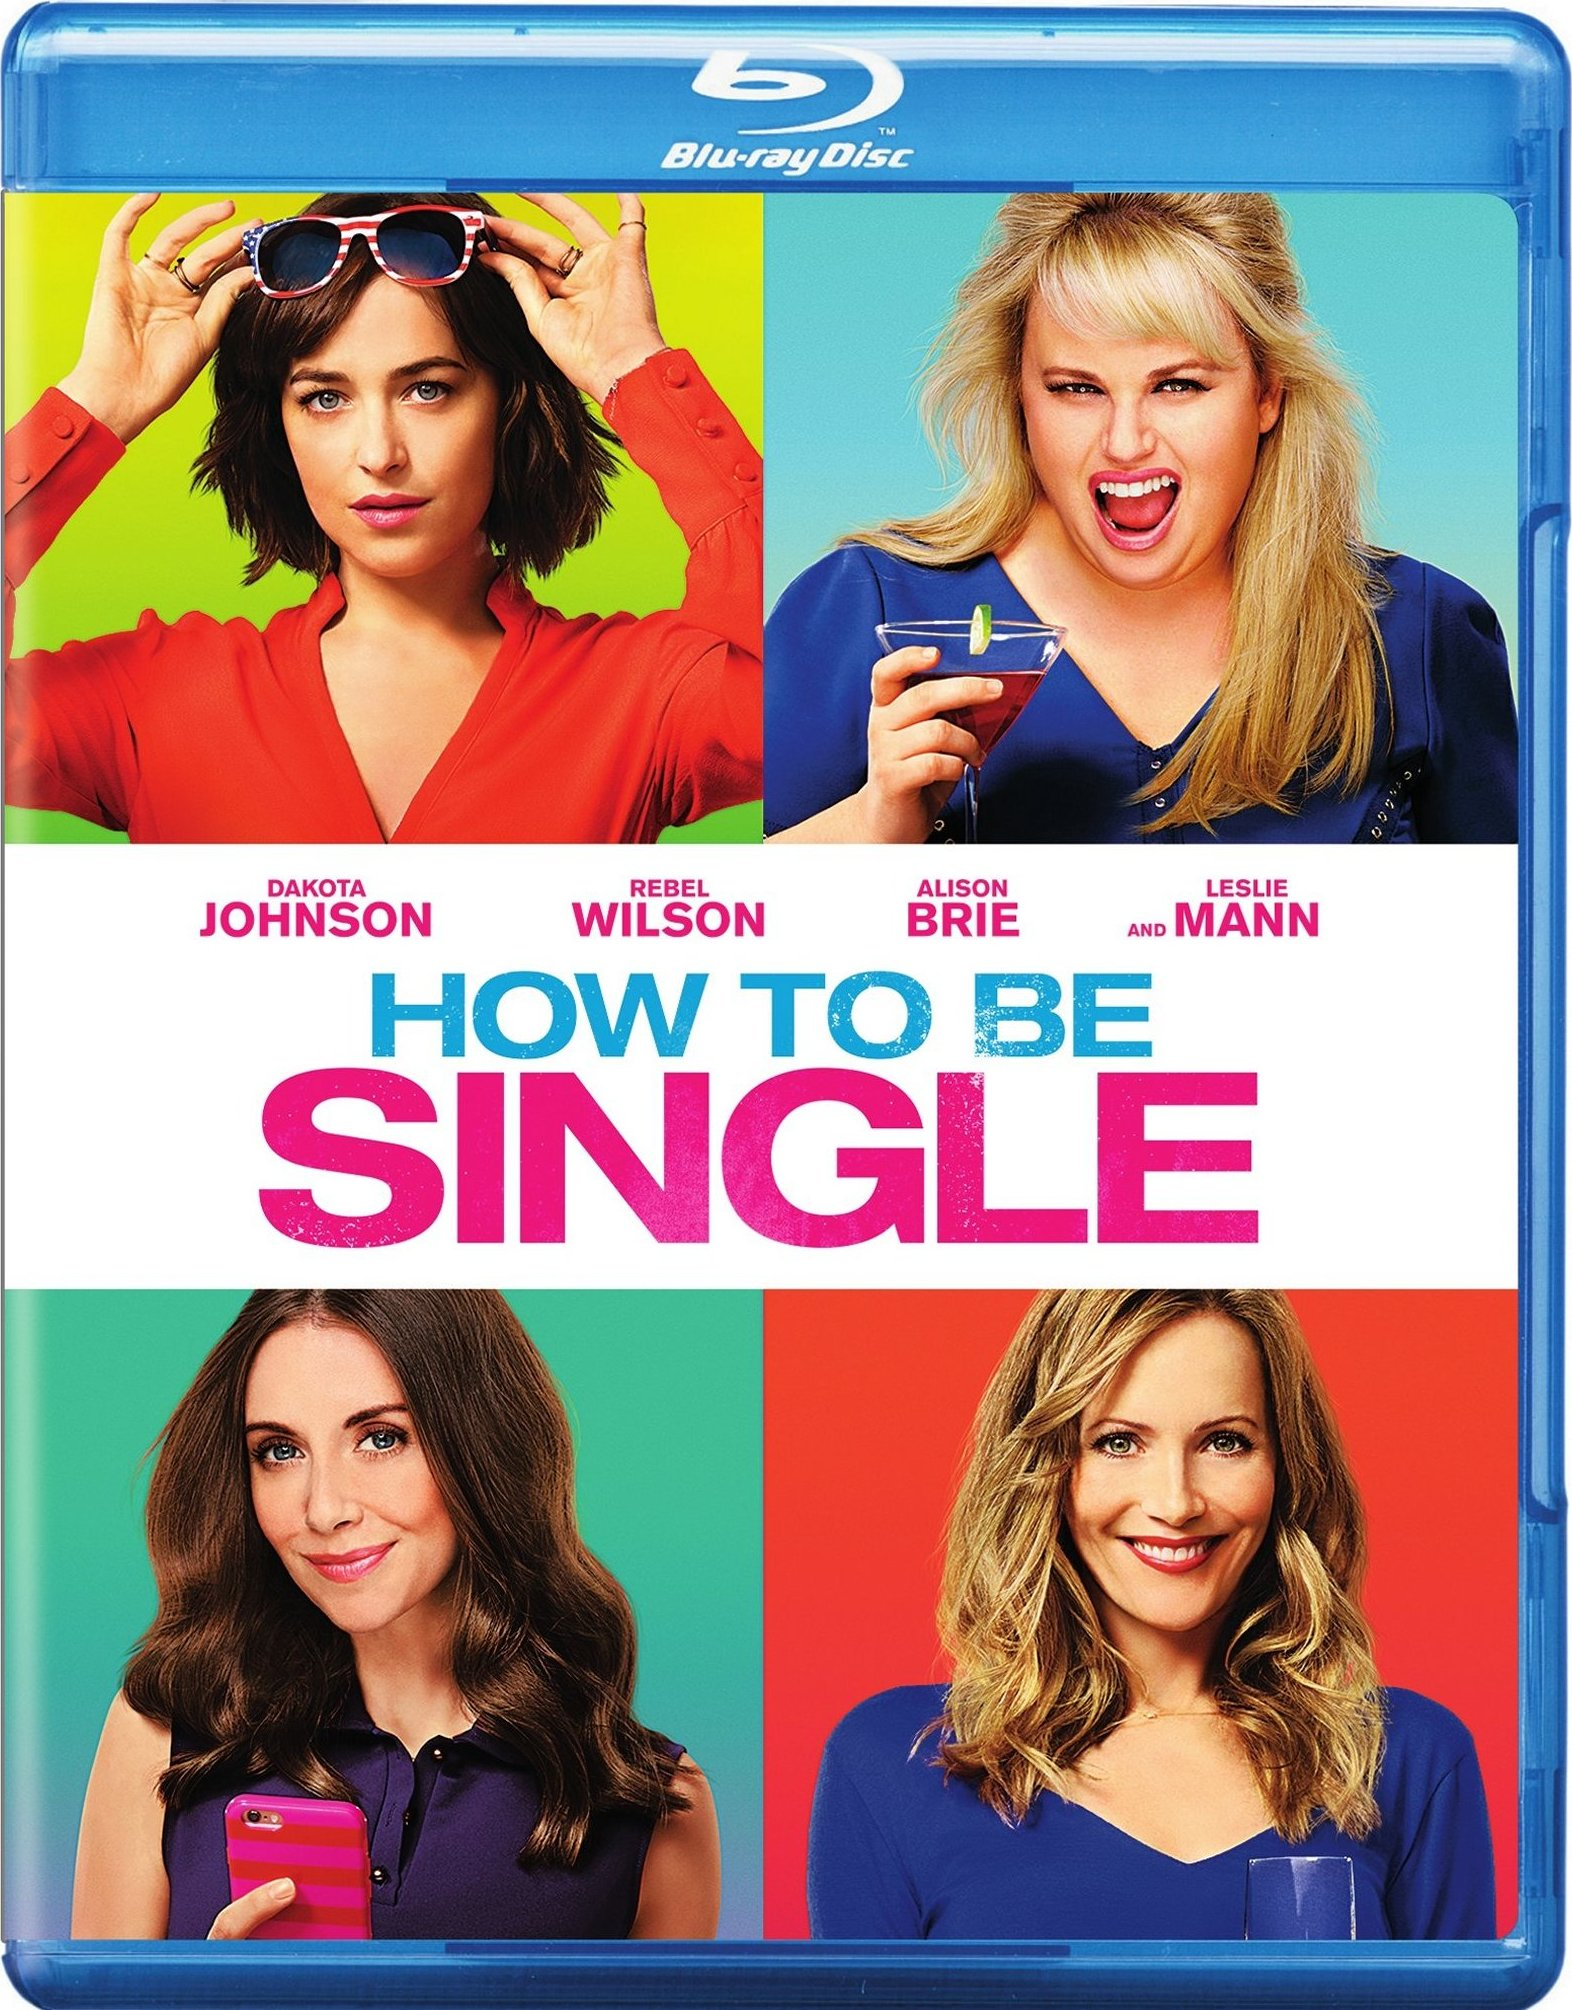 The aisle seat how to be single how to be single ccuart Choice Image